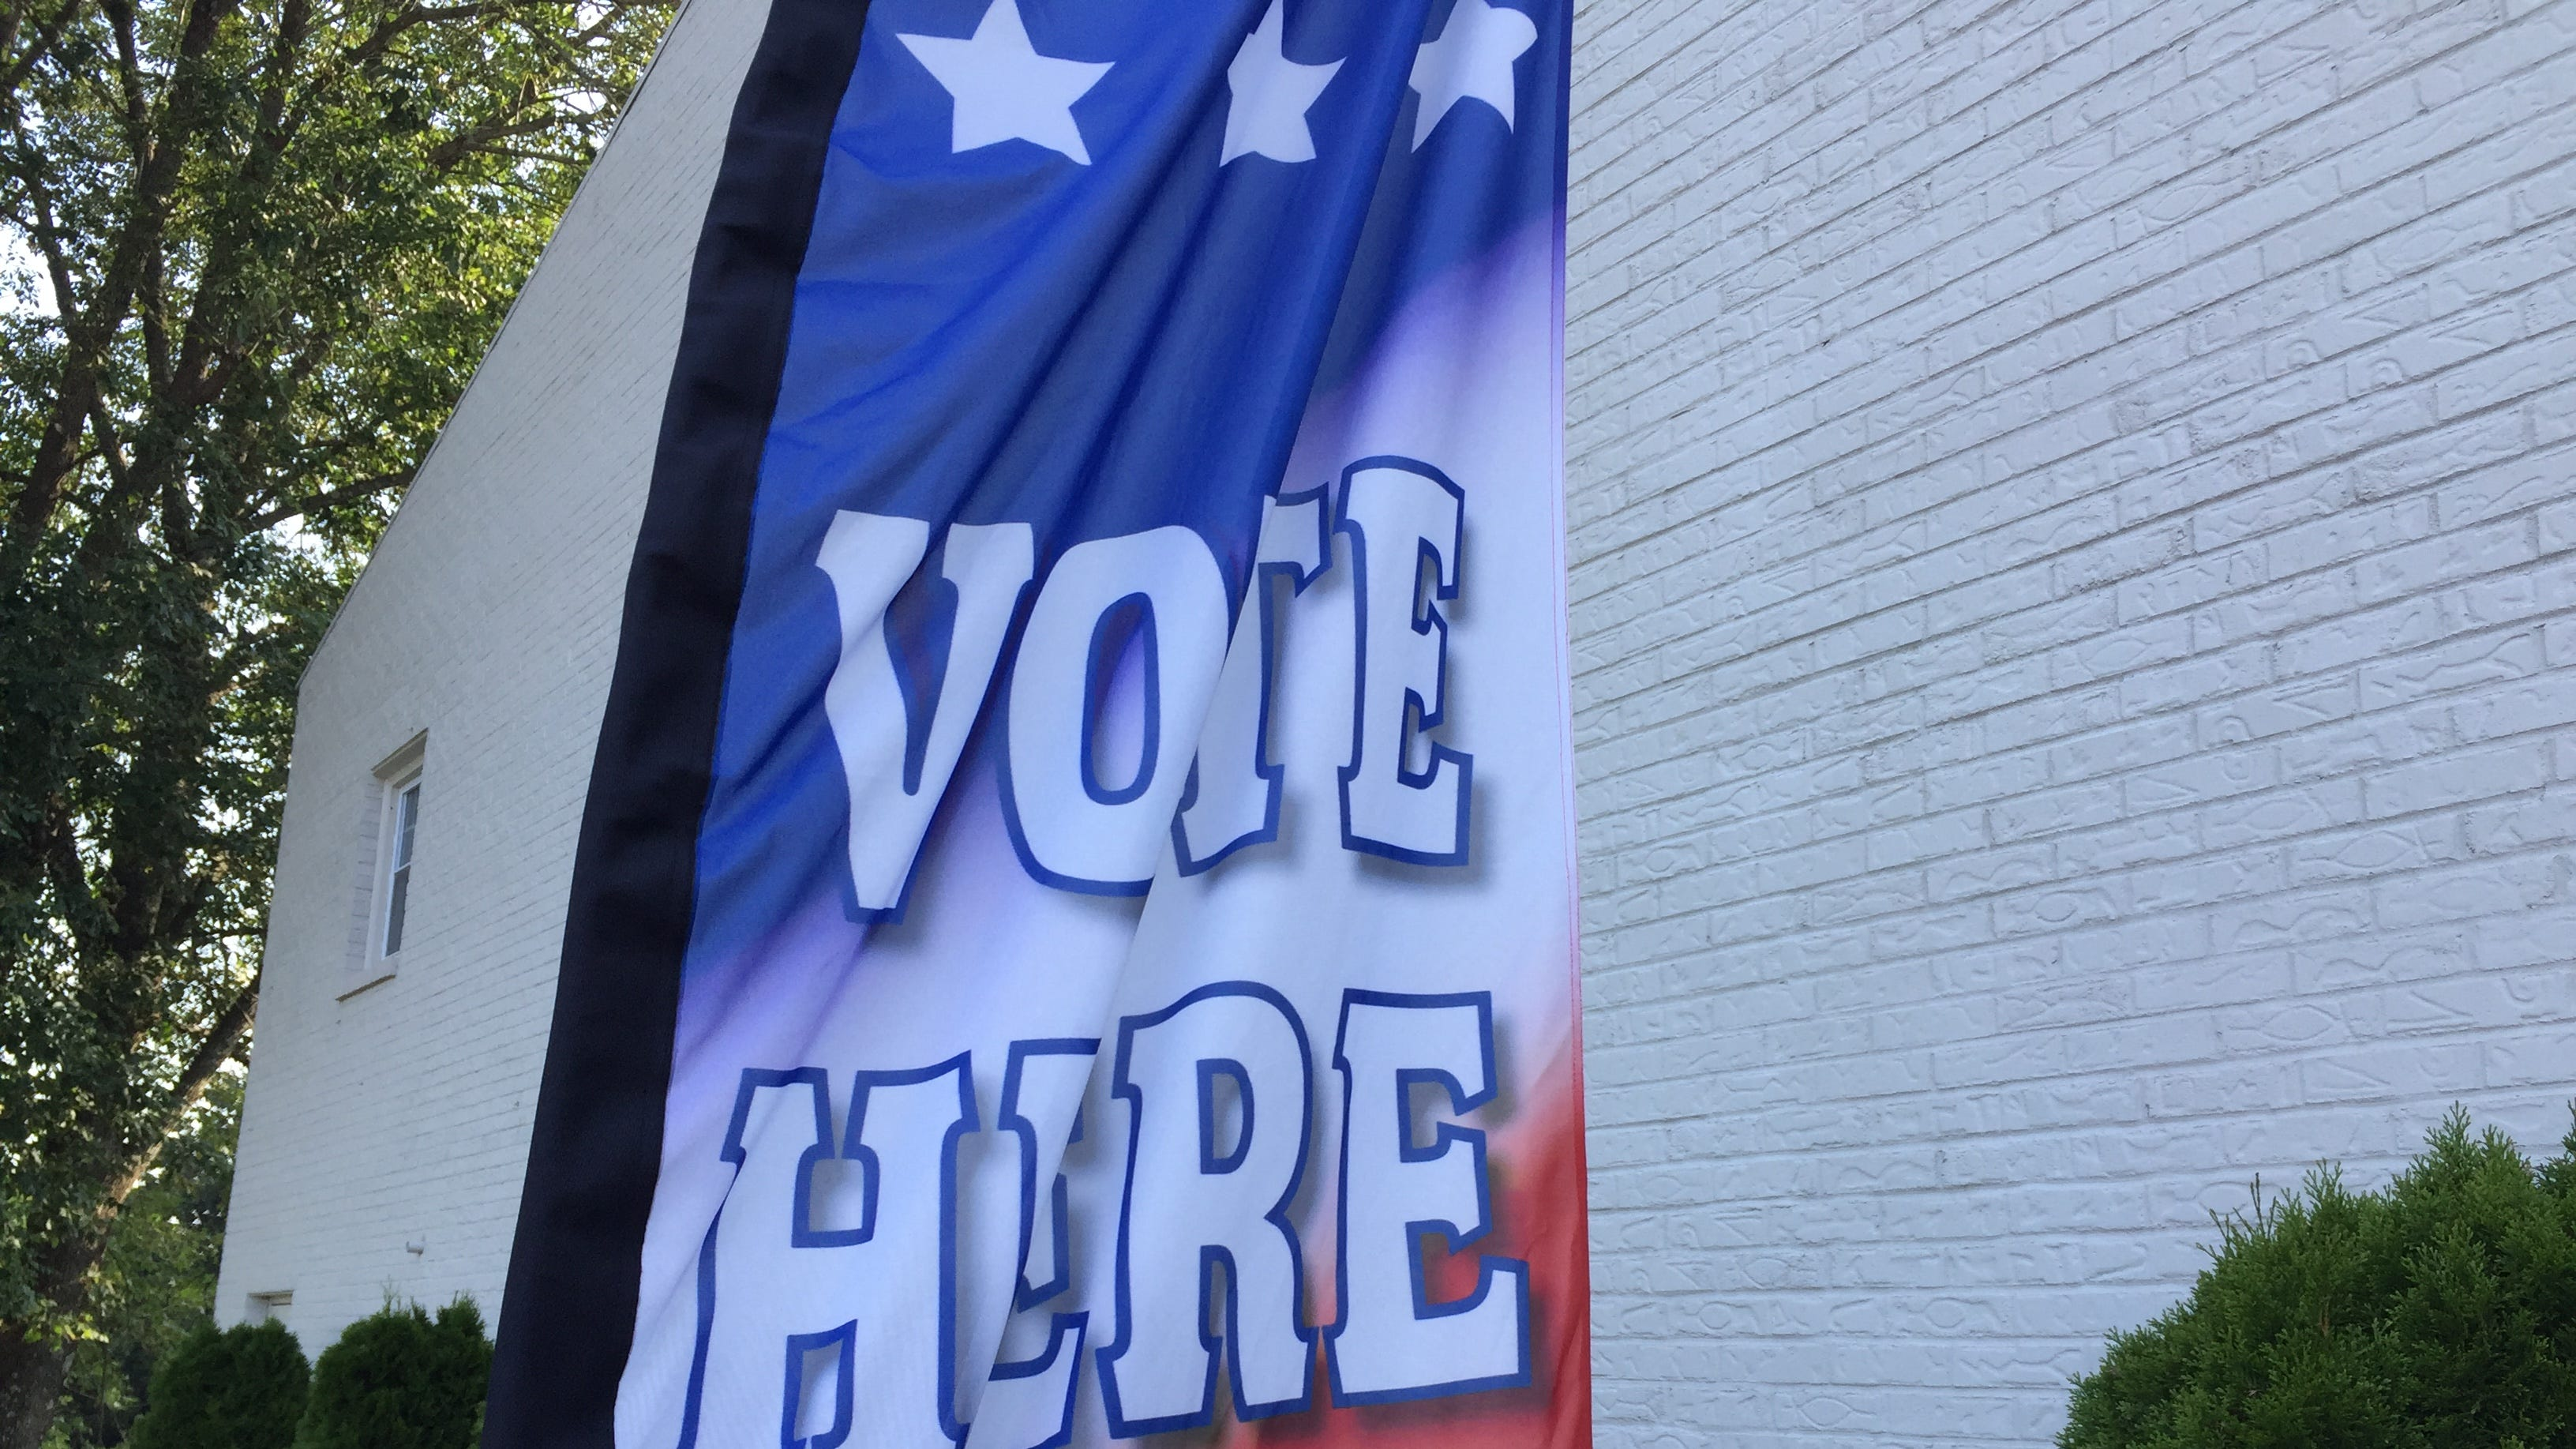 Early voting is scheduled Oct. 17-Nov. 1.